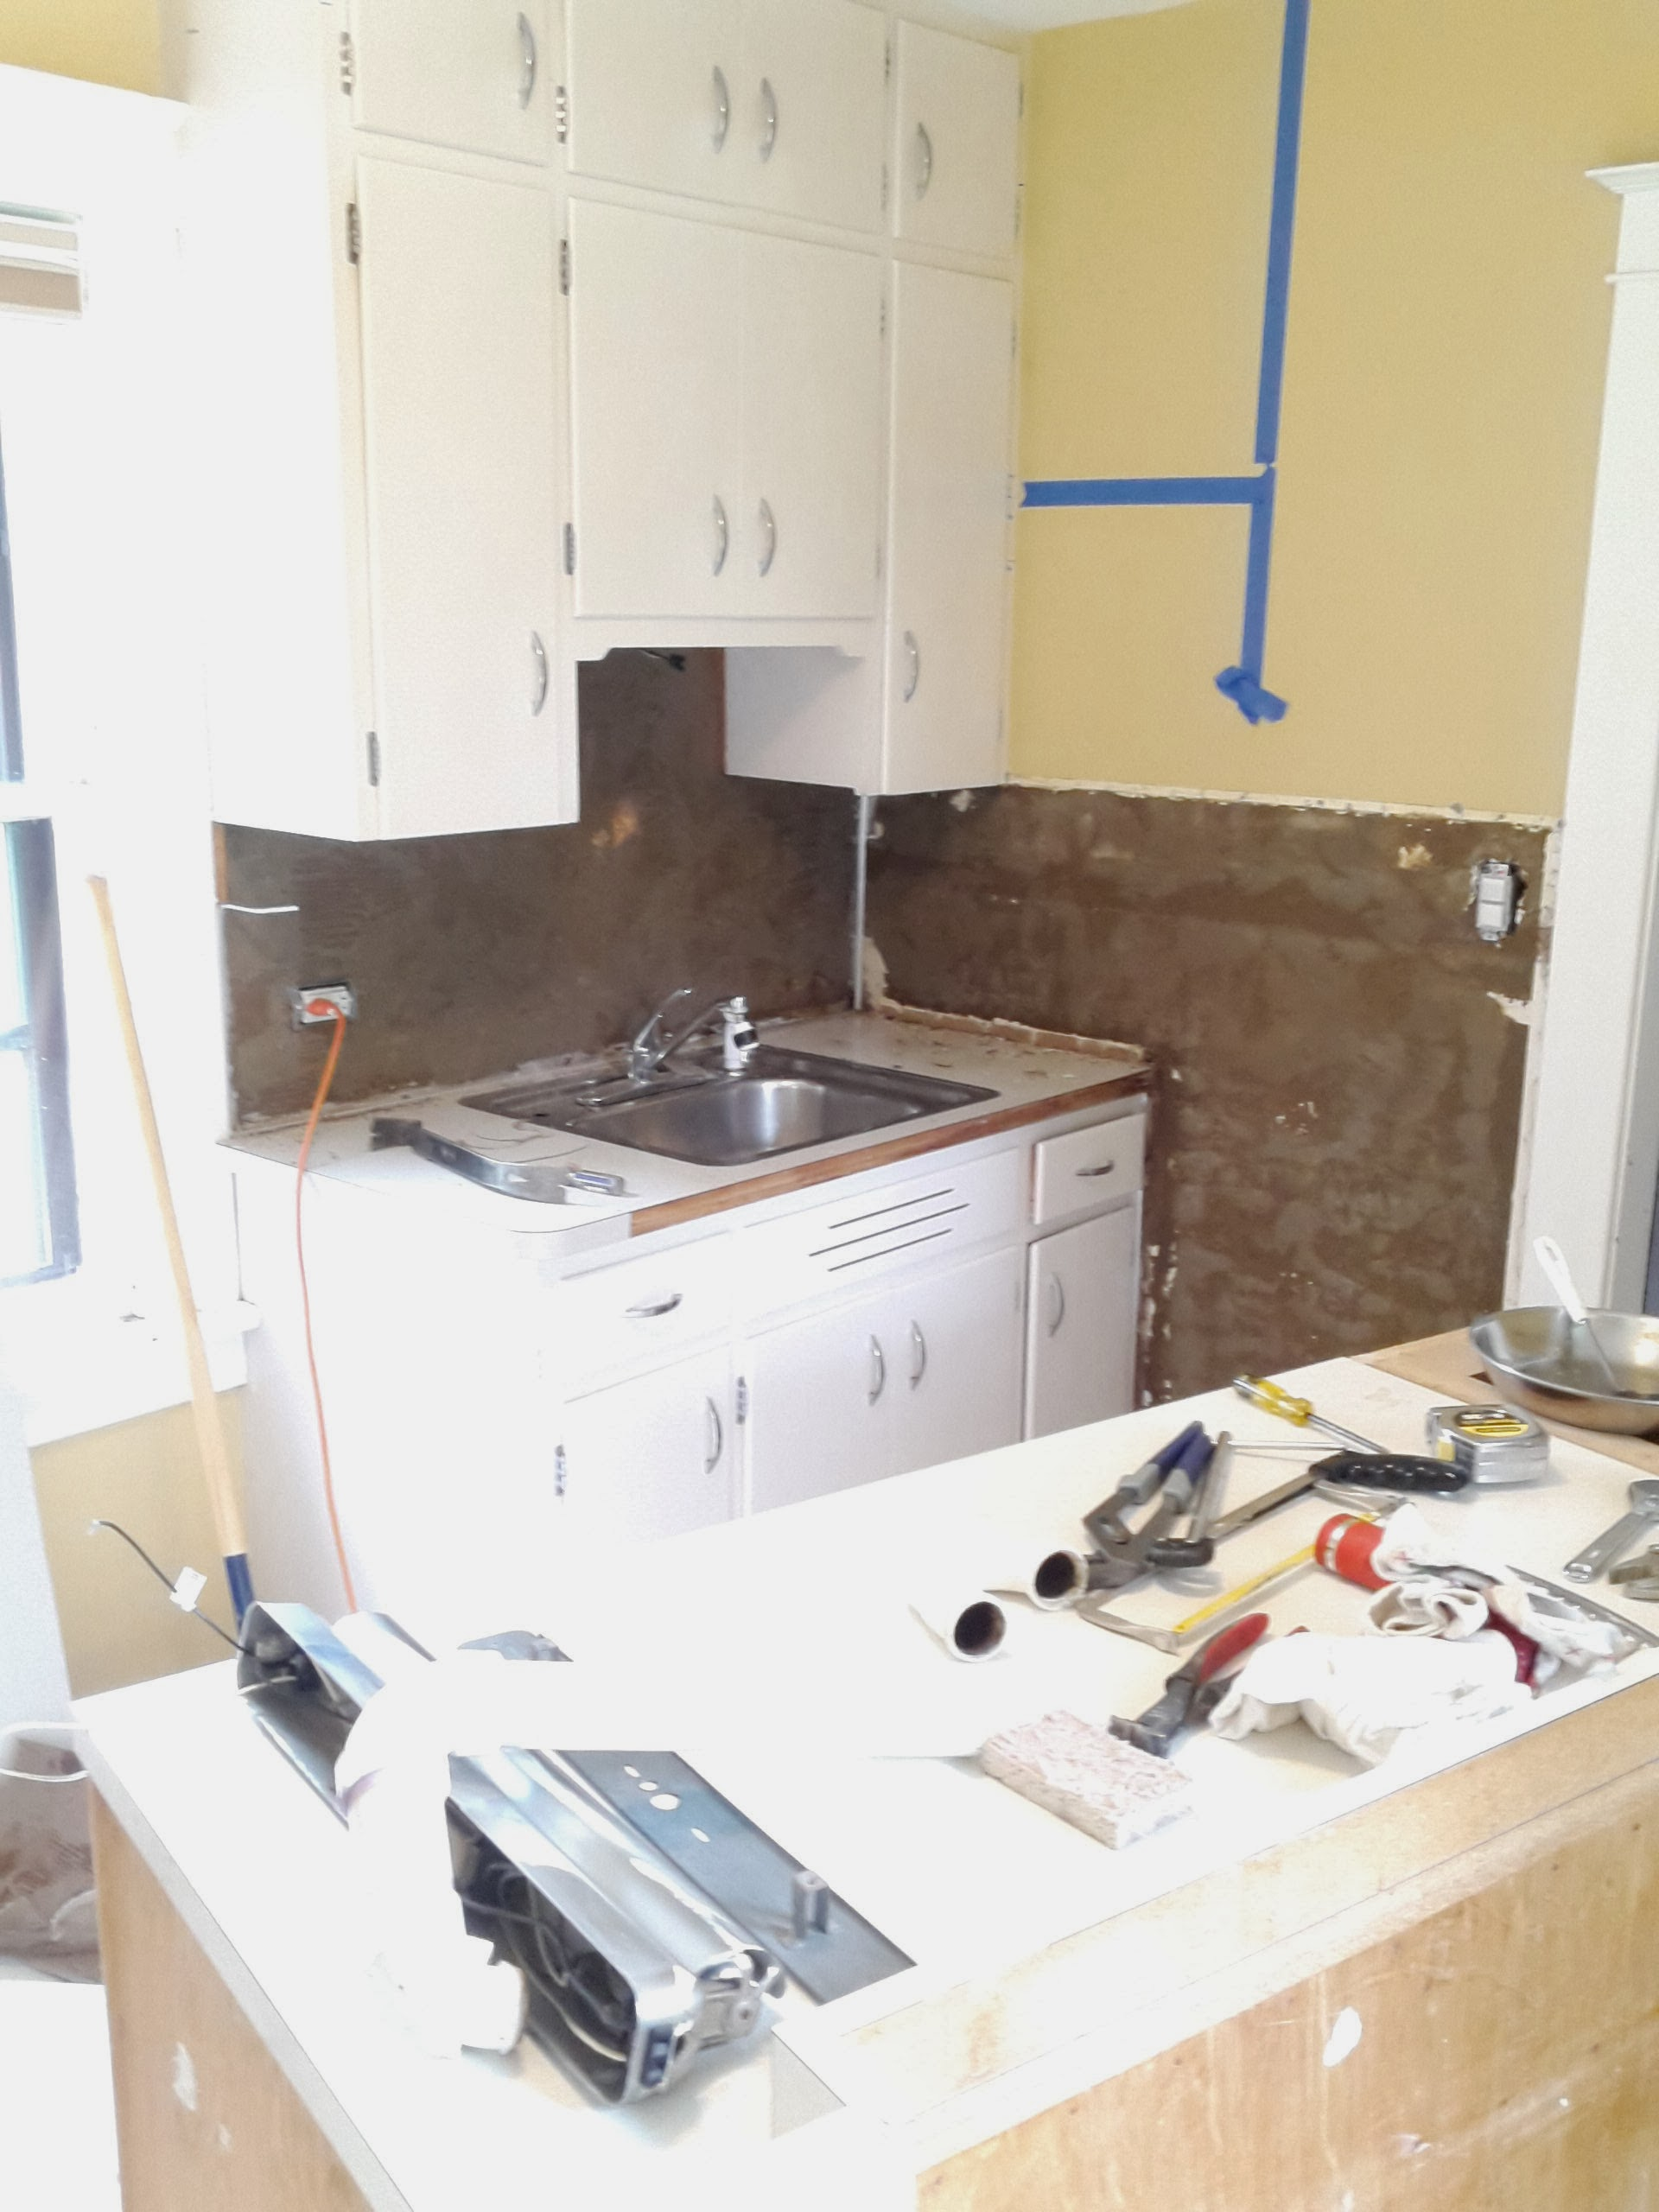 kitchen mid-renovation